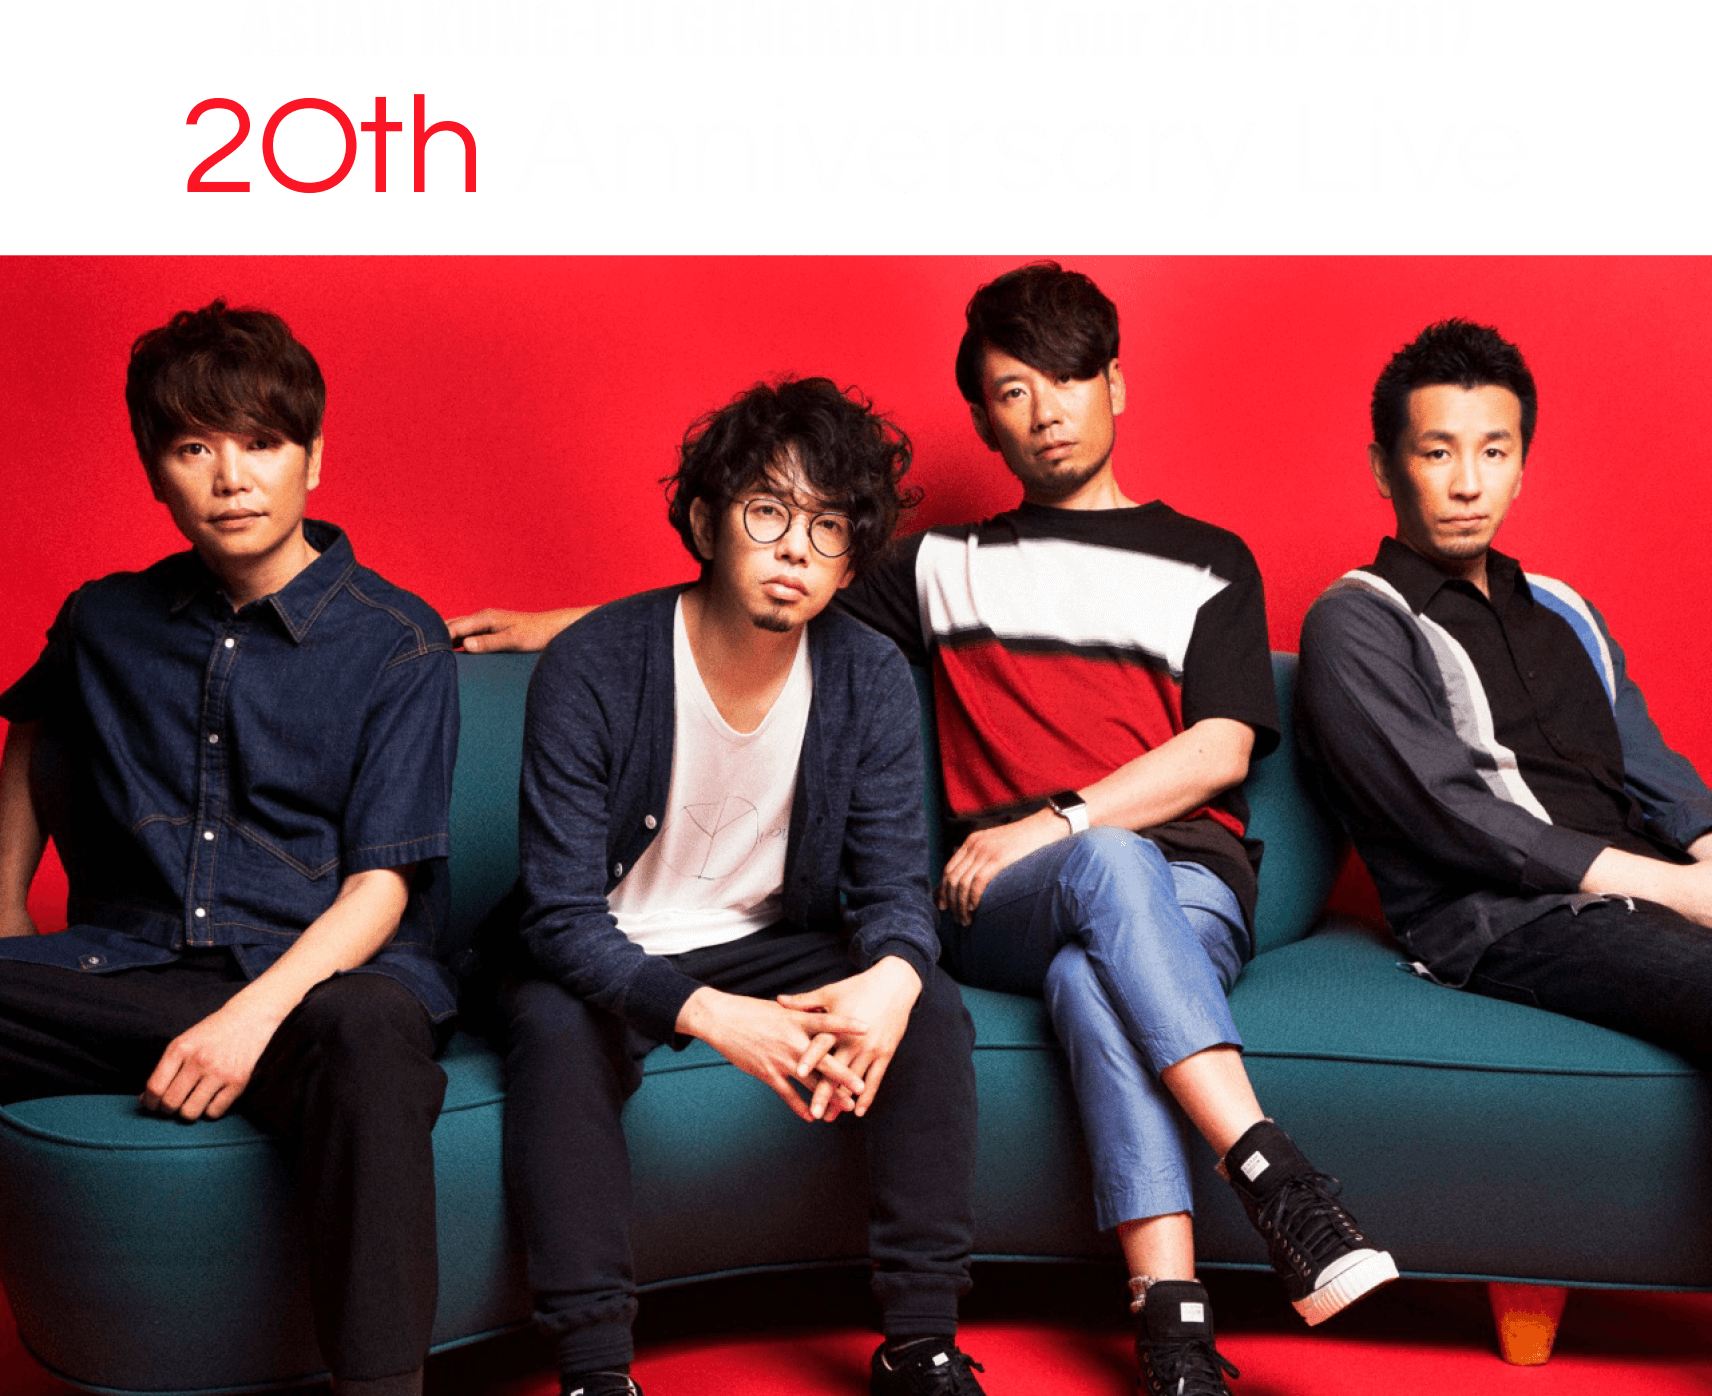 ASIAN KUNG-FU GENERATION Tour 2016 - 2017「20th Anniversary Live」